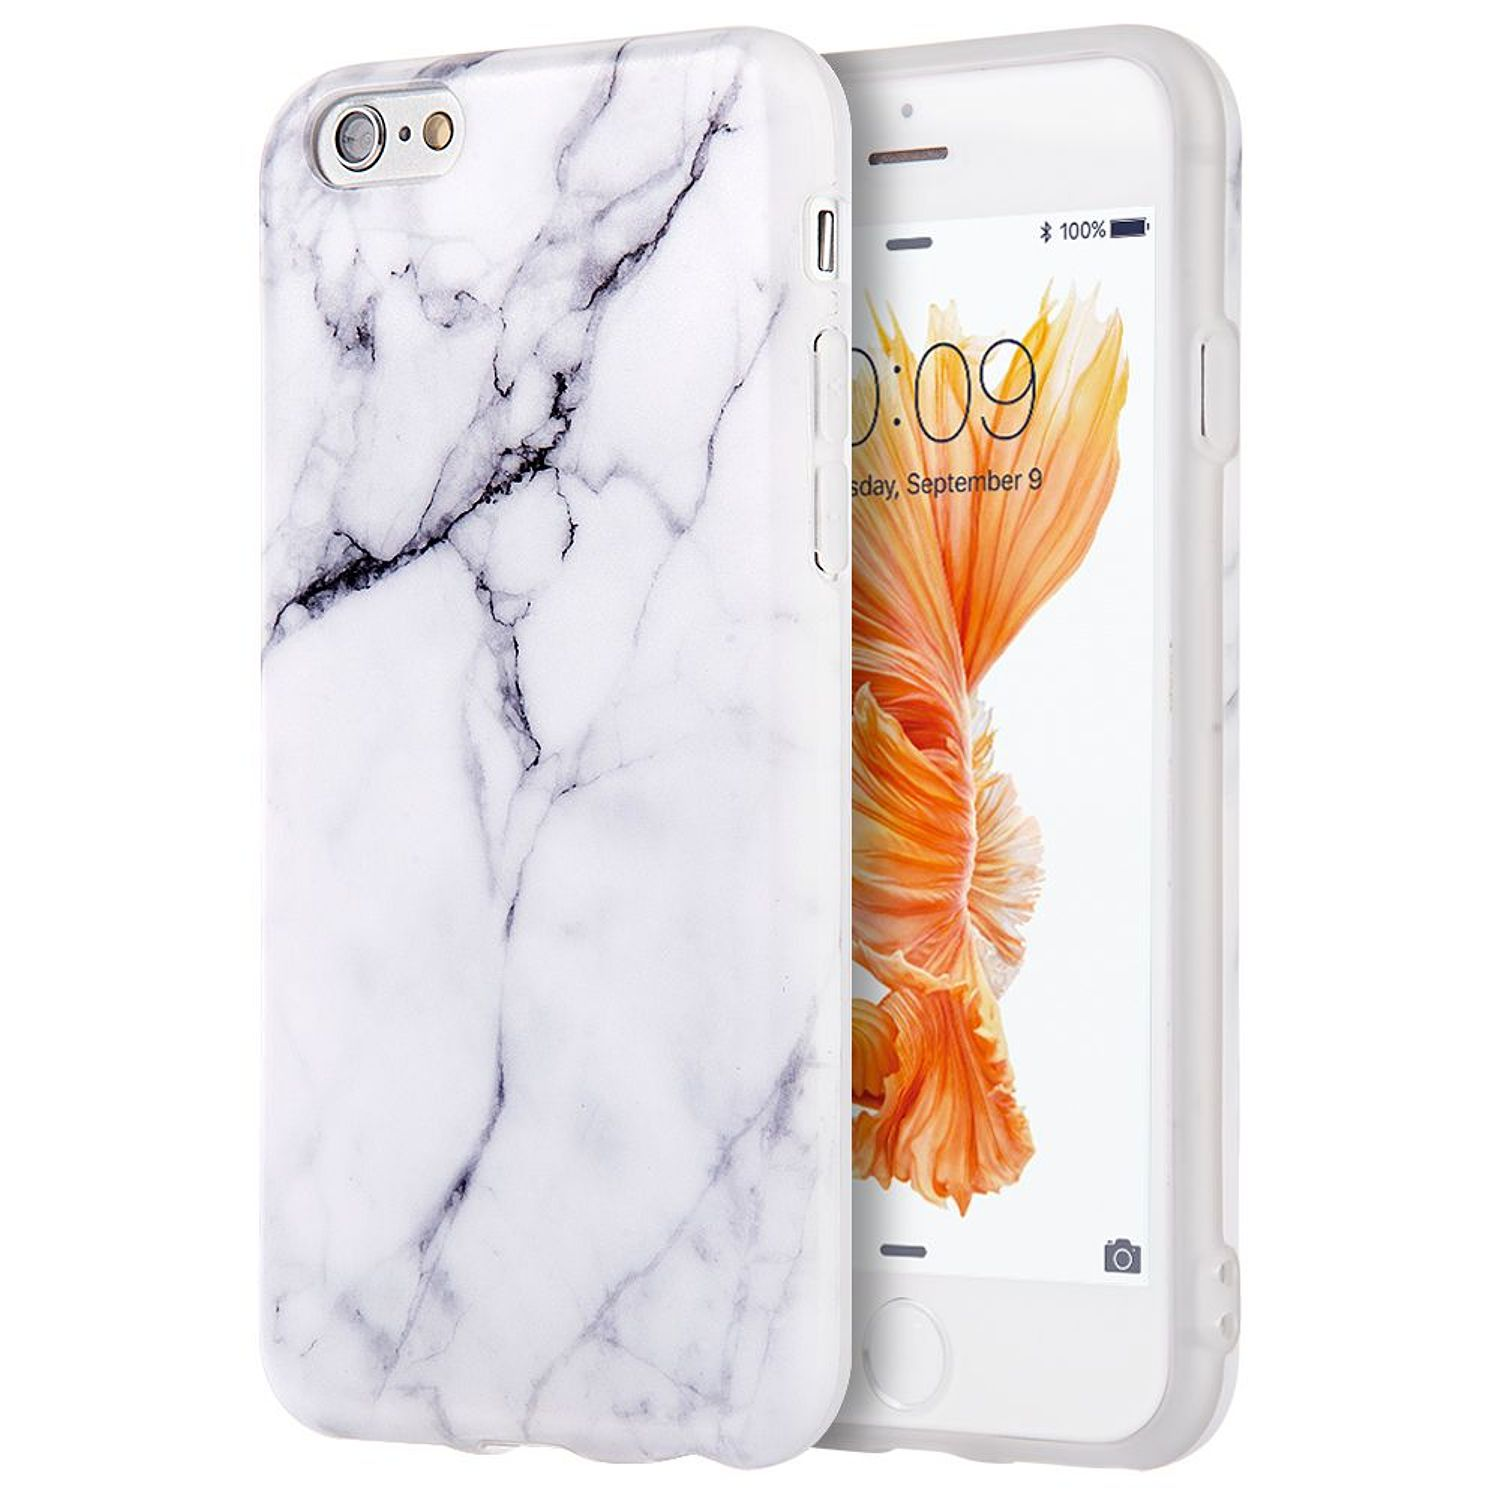 Apple iPhone 6s Plus / 6 Plus Marble Imd Soft TPU Ultra Thin Skin Rubber Gel Case by Insten - White/Black